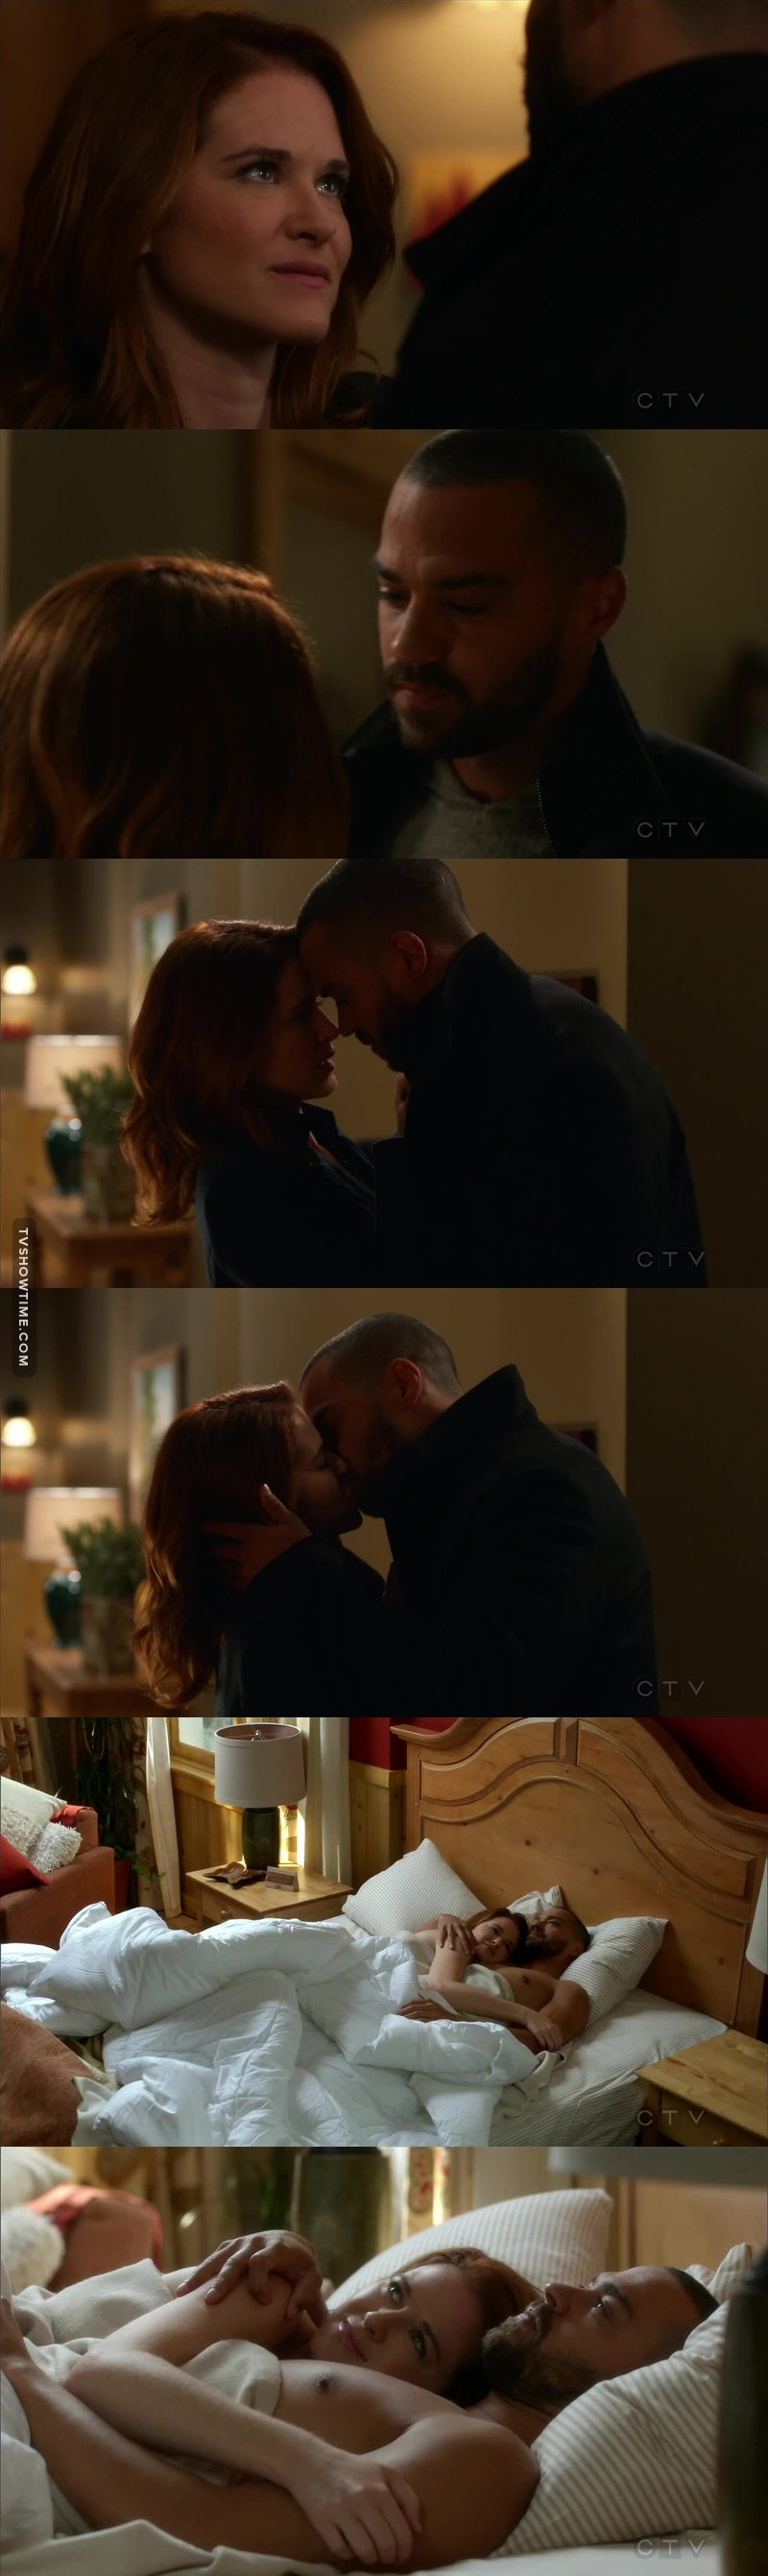 JAPRIL IS BACK BABY! I hope they will be together this time!